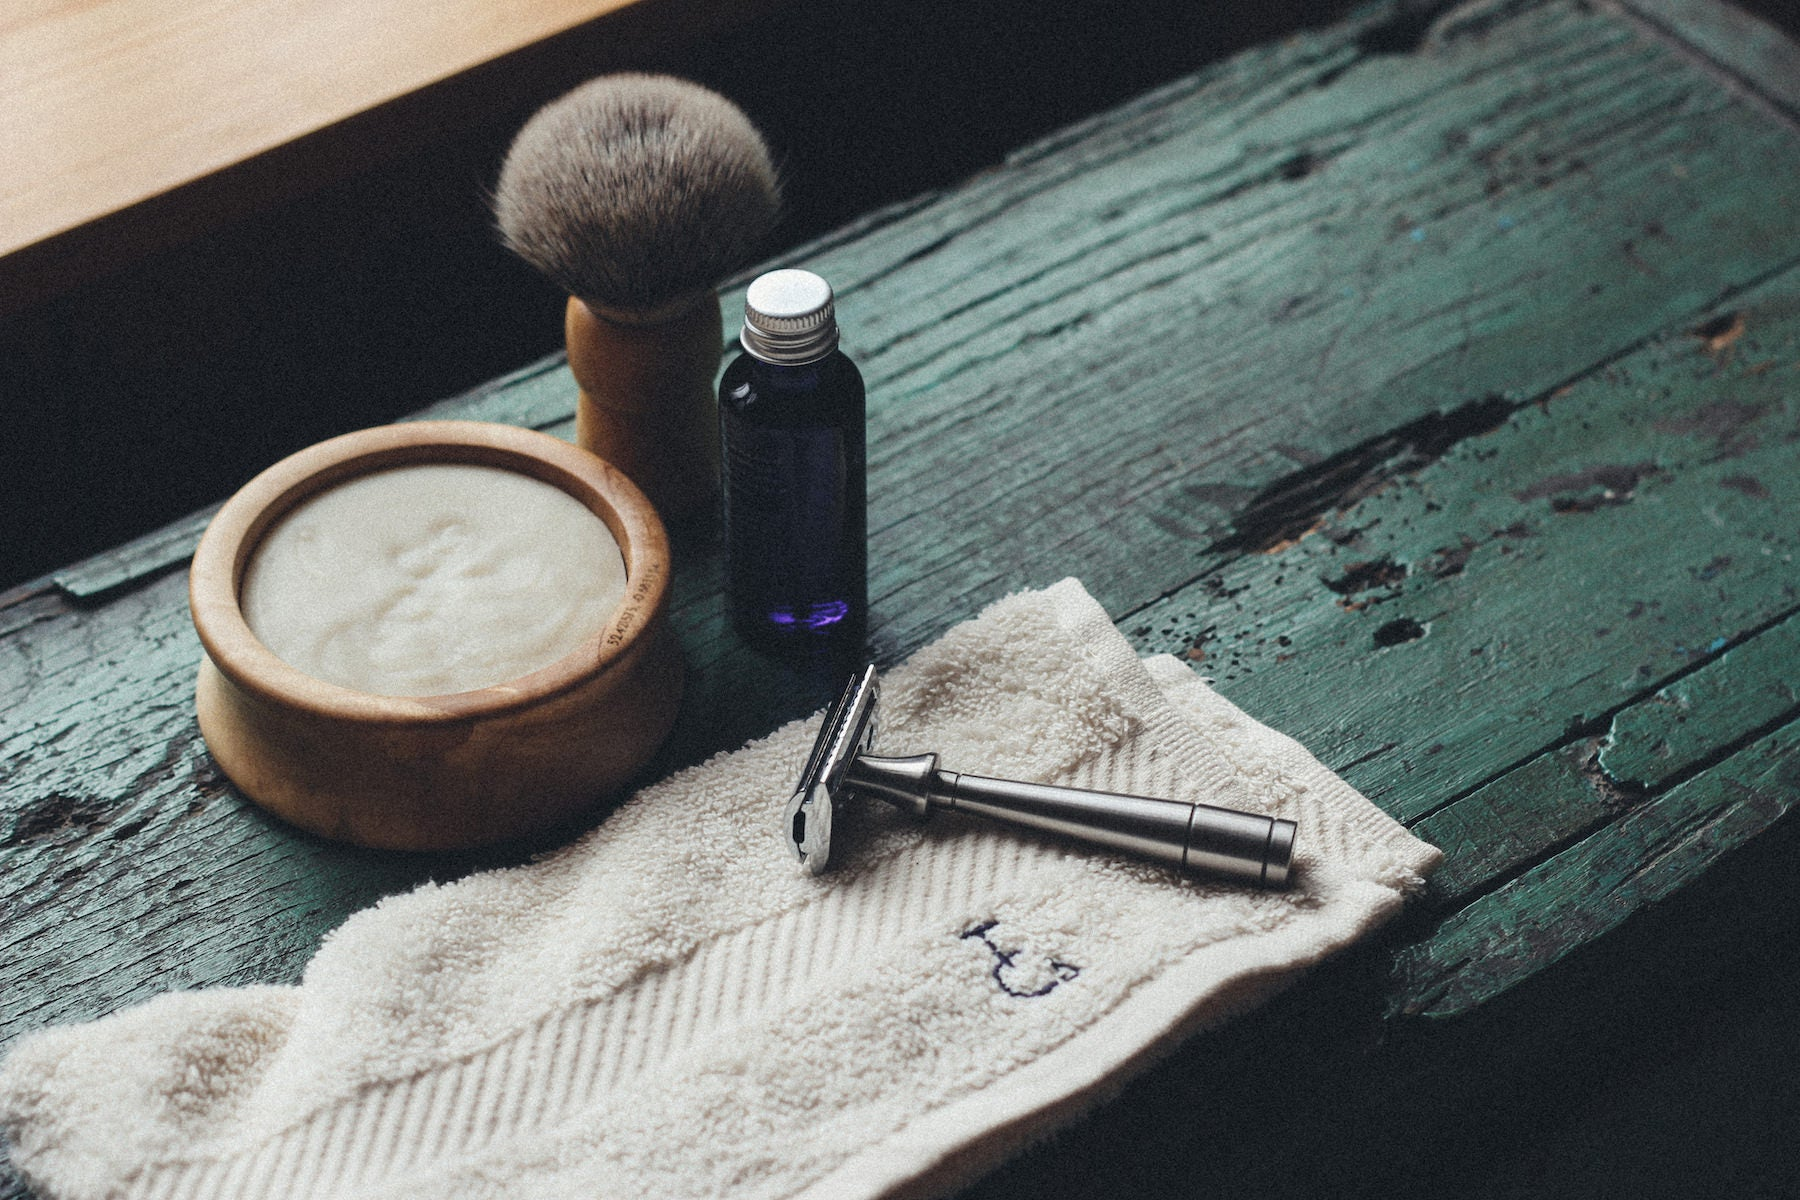 Shaving brush, bowl and soap made from sustainably sourced 300-year-old British chestnut. Precision solid metal Mark K safety razor kit: it's beautiful, sleek design and weighted handle make for unsurpassed balance.